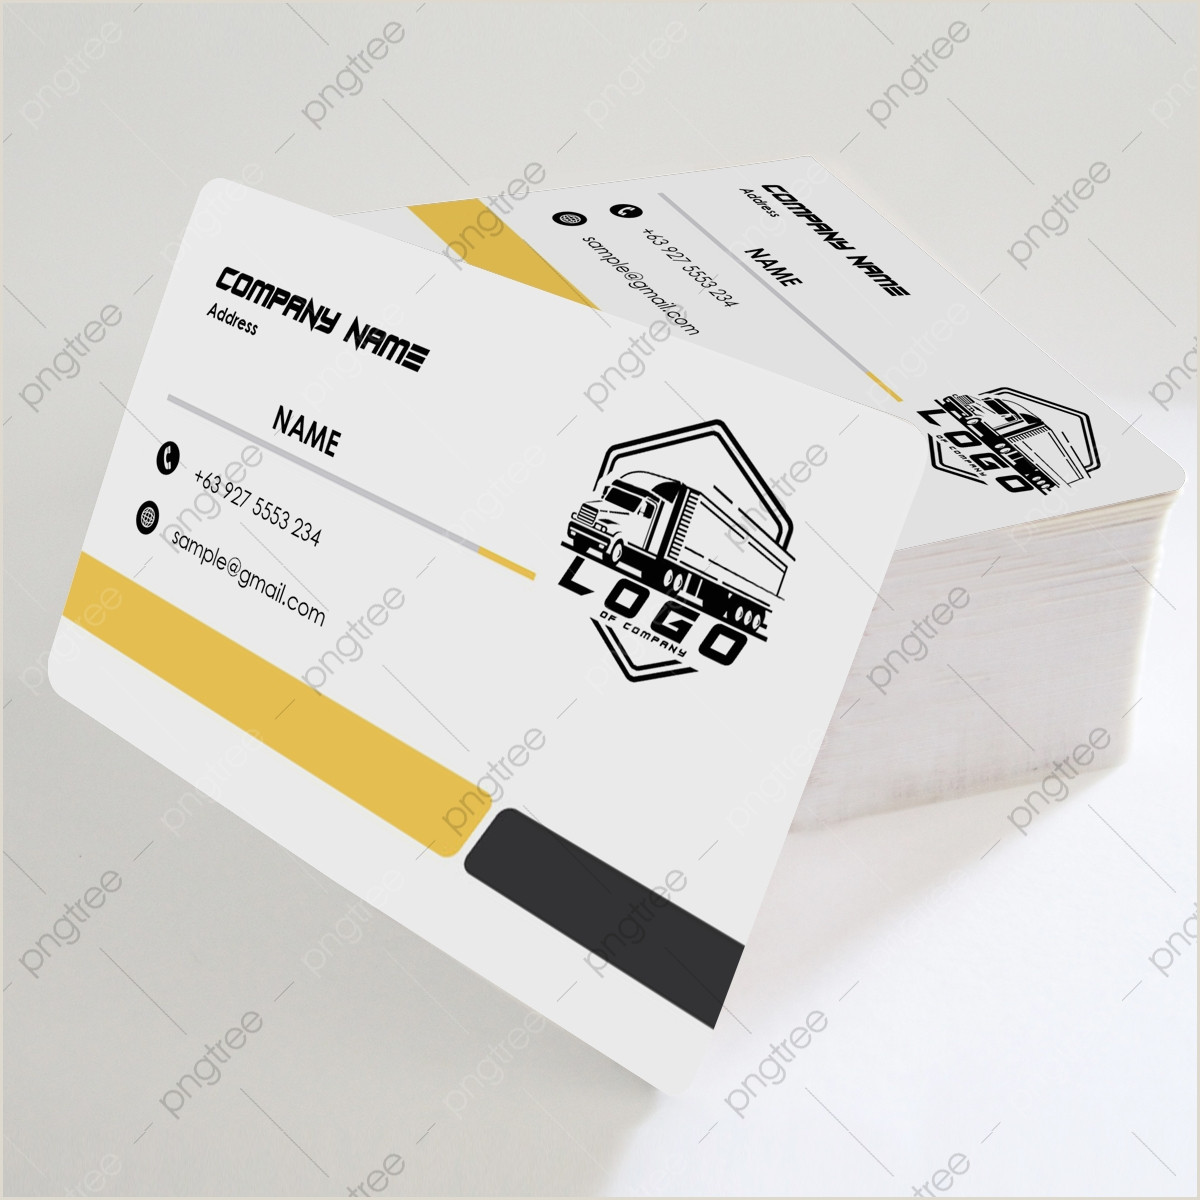 Calling Cards Designs Calling Card Png Vector And Psd Files